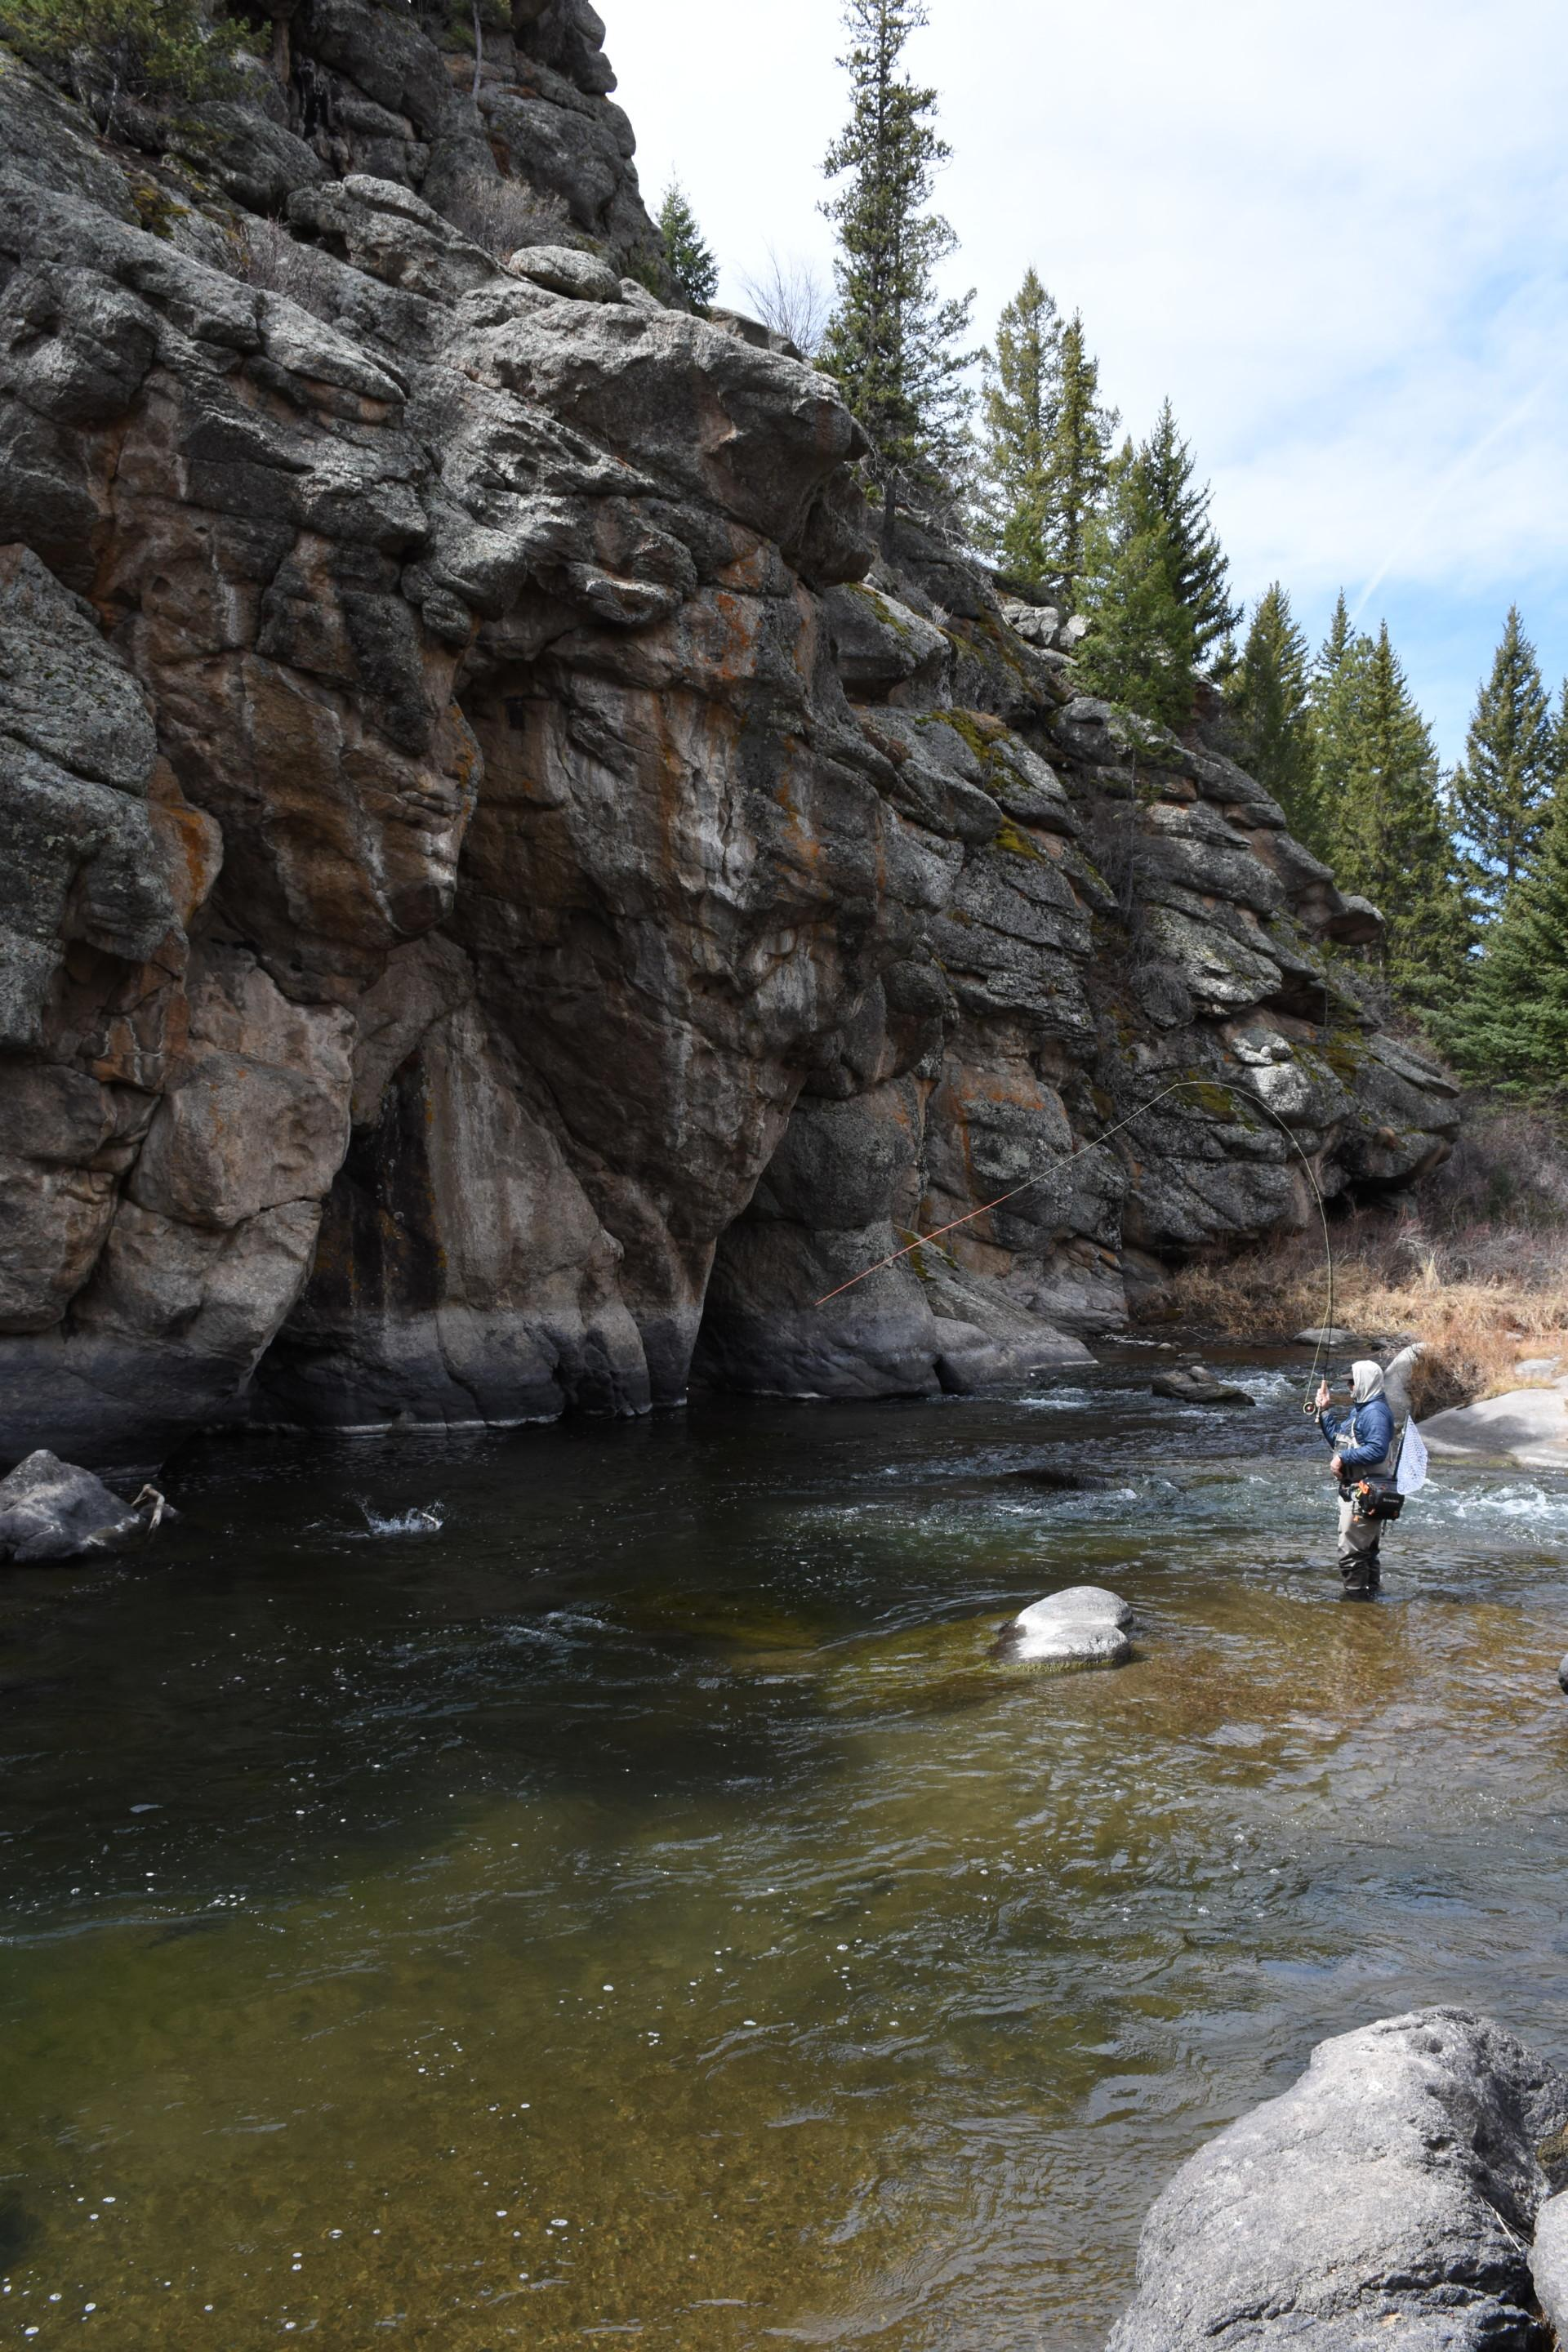 Angler fly fishing near rock wall